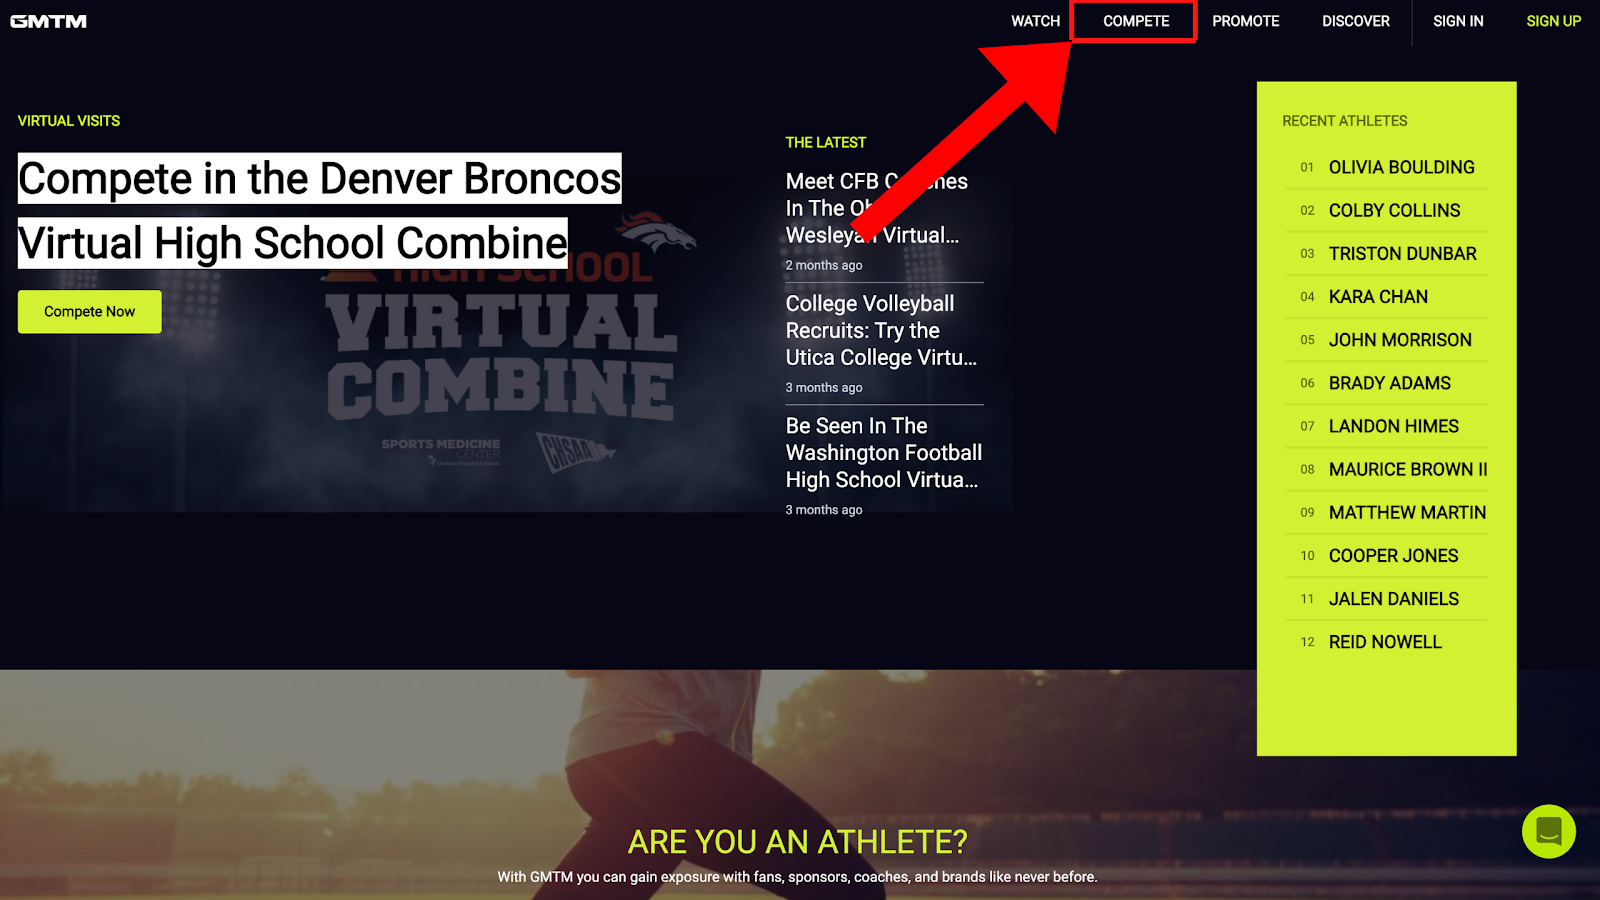 How To Participate In A Virtual Combine On GMTM